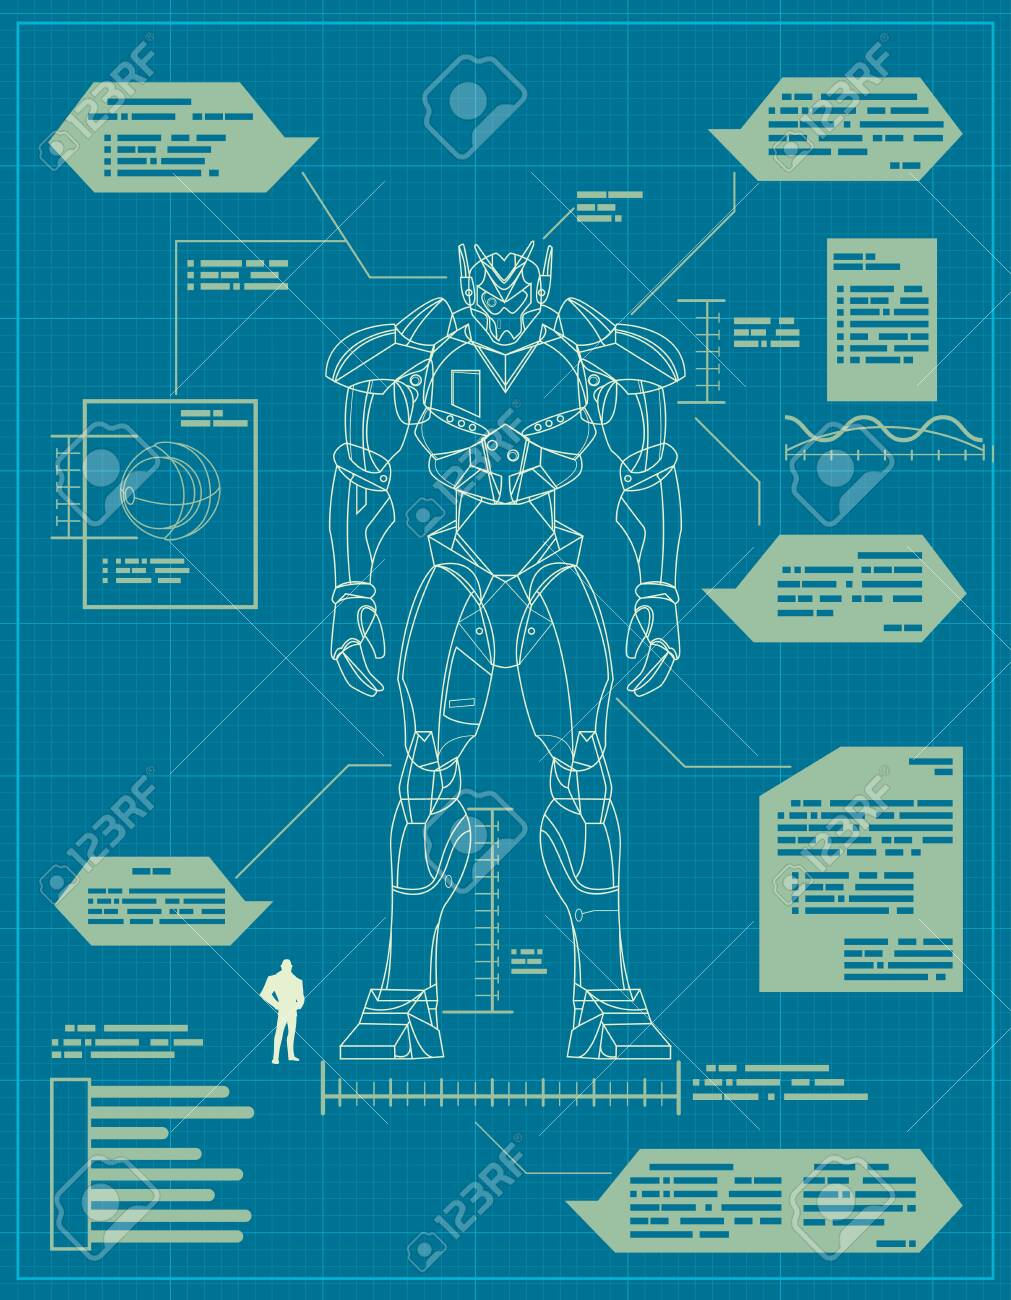 Blueprint for the construction of a giant robot. - 131539985